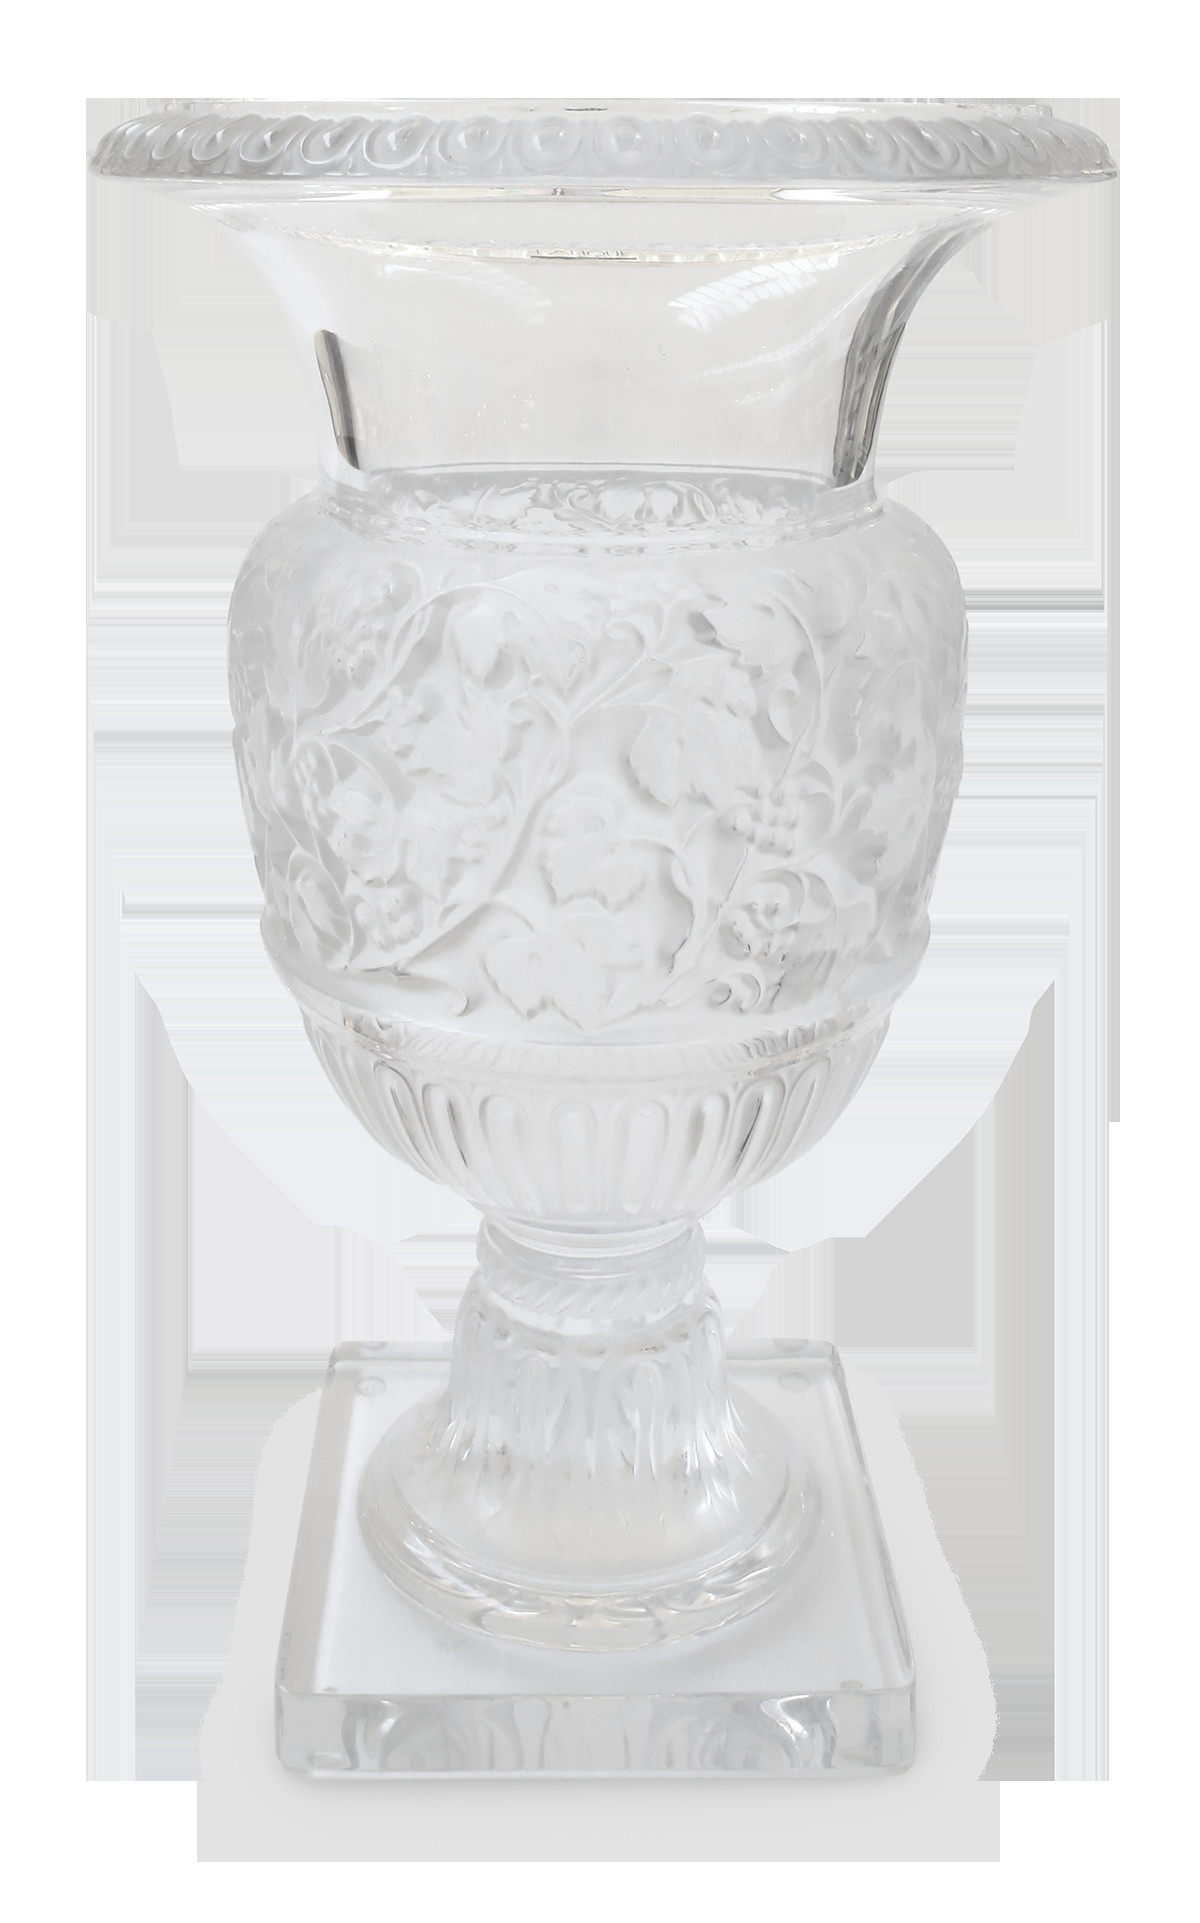 lalique versailles vase of lalique versaille vase thomas goode sale pertaining to lalique versaille vase